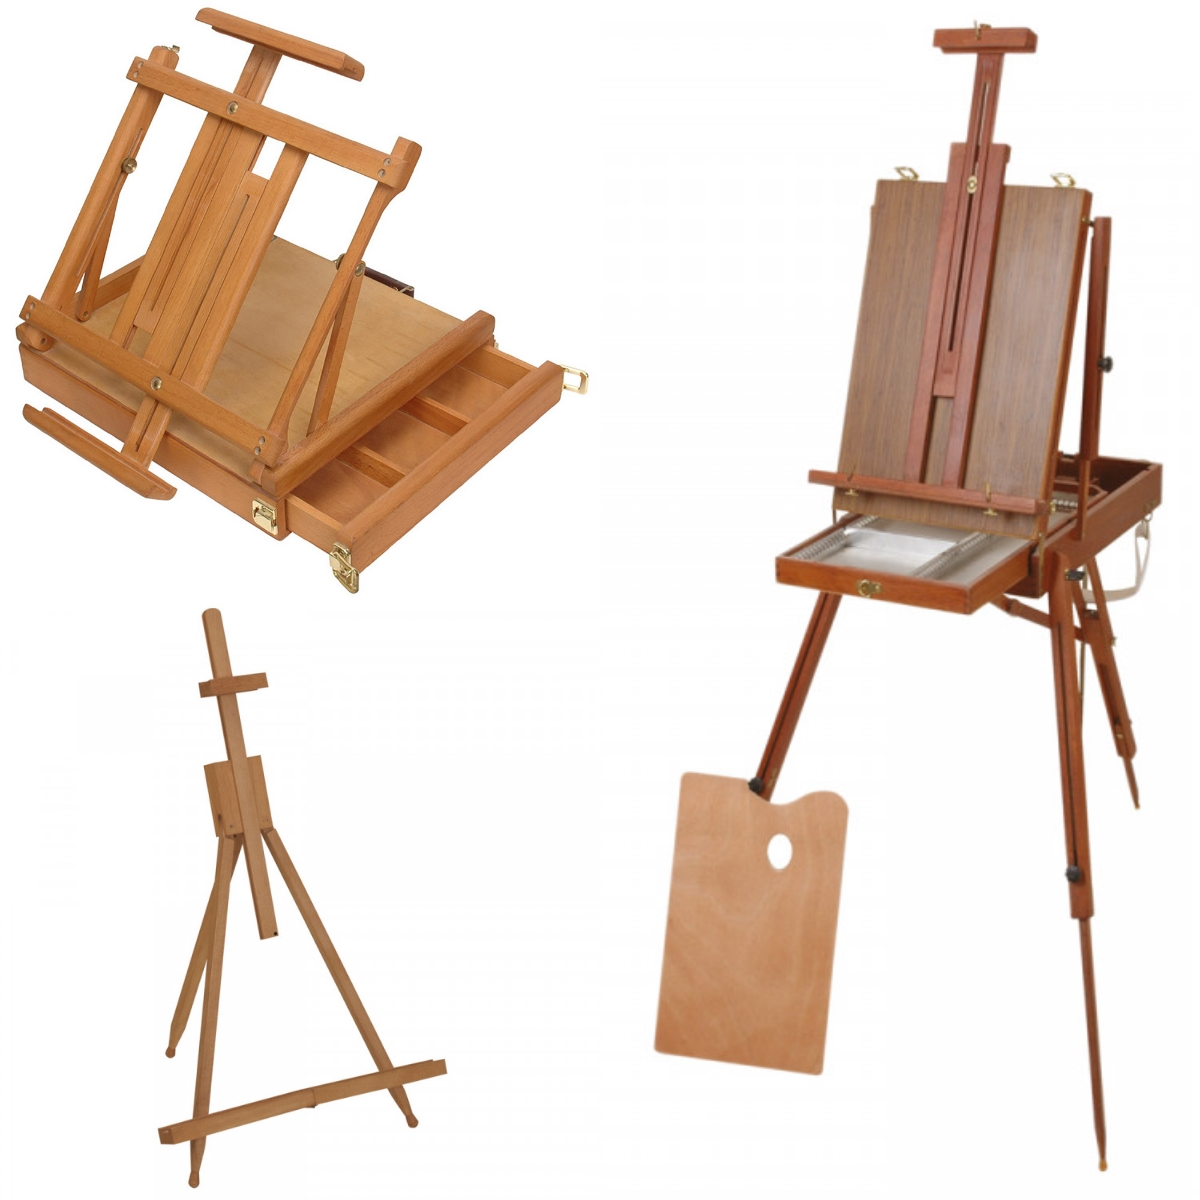 top left: Jackson's Wentworth Box Easel (code: EJ016); bottom left: Jackson's Tripod Table Easel (code: EJ015); right: Jackson's French Style Box Easel (code: EJ019)